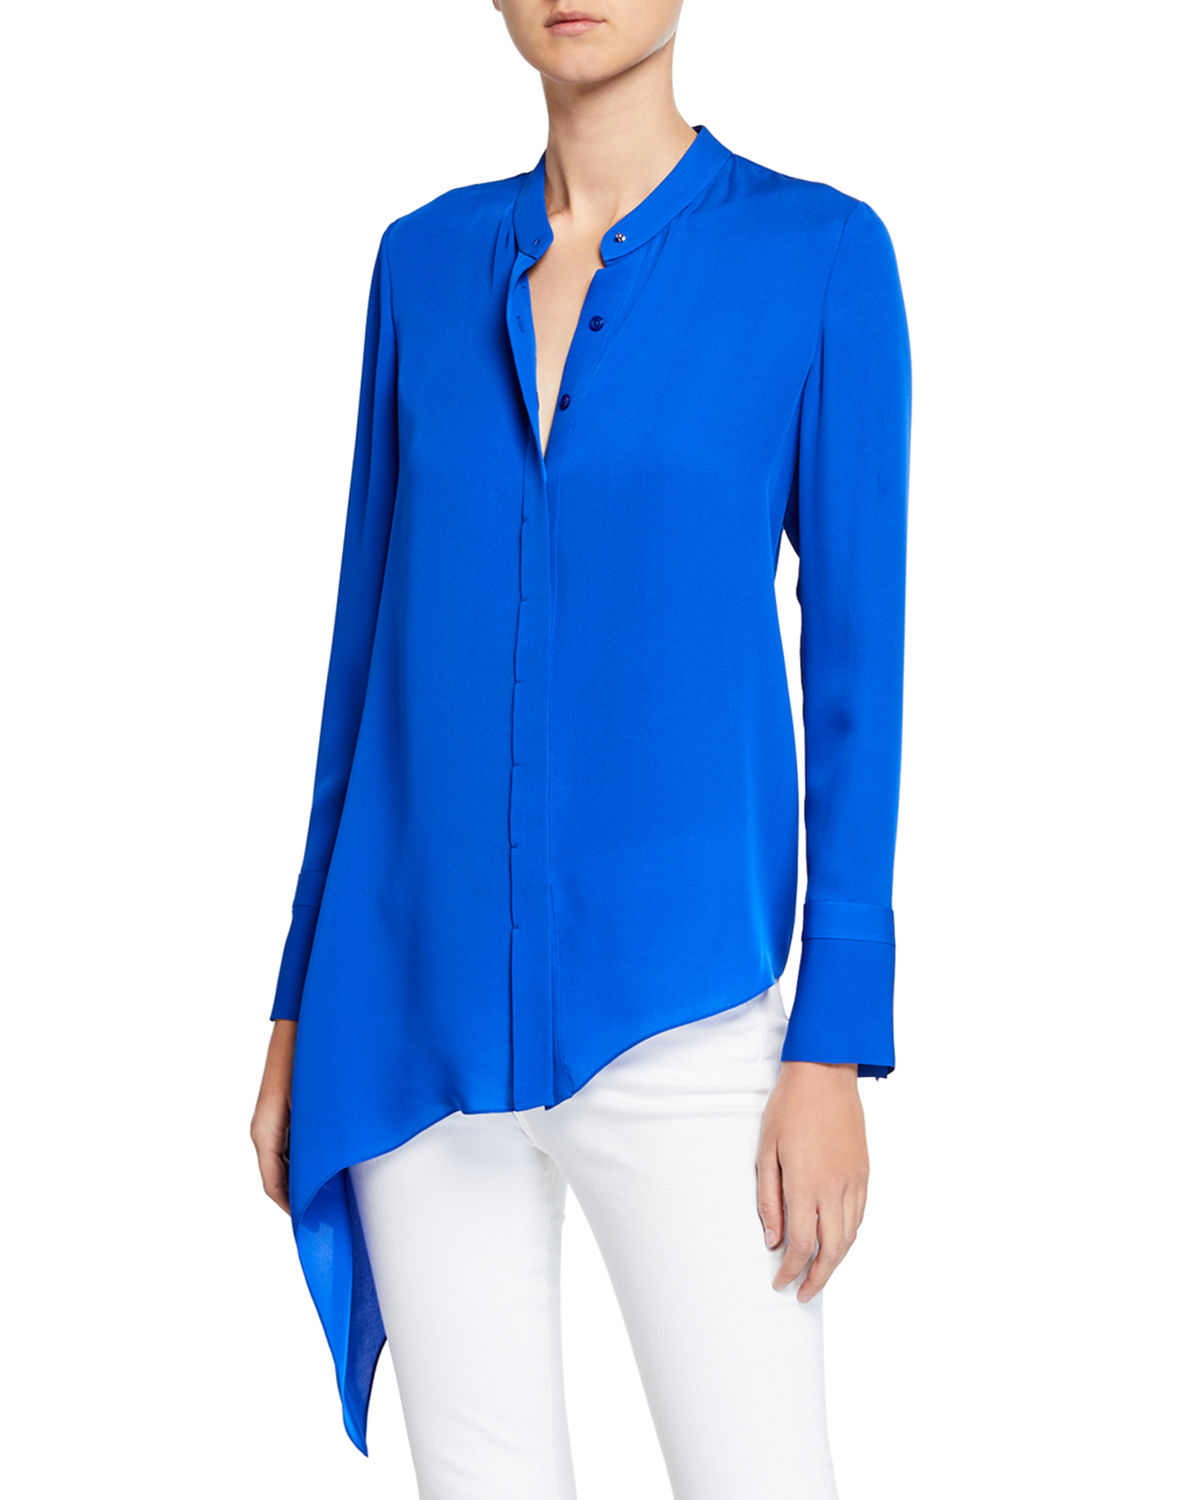 2d39bf7b1c71be elie tahari tops & blouses tops for women - Buy best women's elie tahari  tops & blouses tops on Cools.com Shop